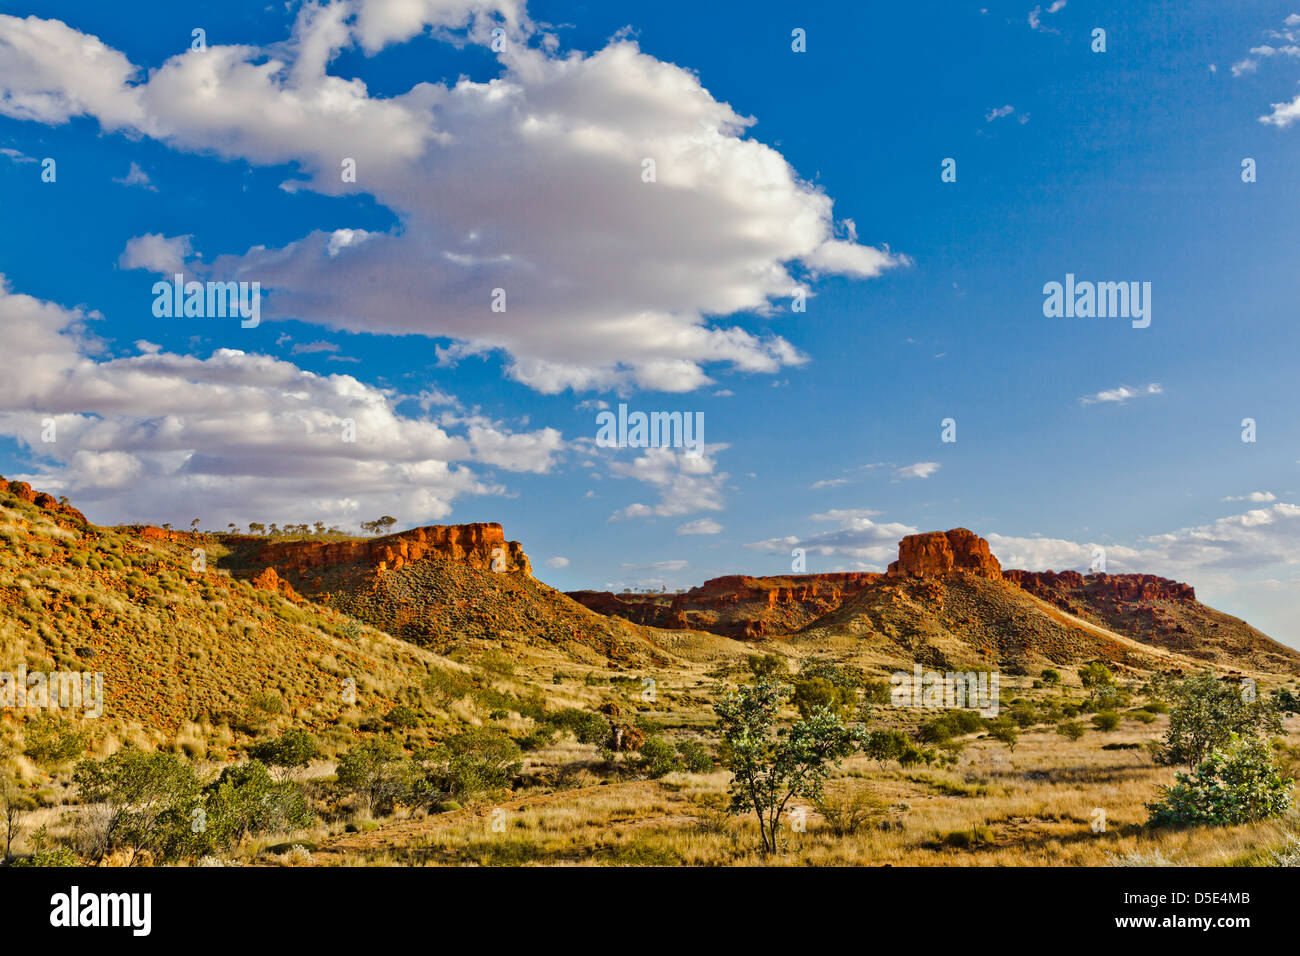 Australien, Western Australia, Kimberley, Great Northern Highway in der Nähe von Fitzroy Crossing Stockbild